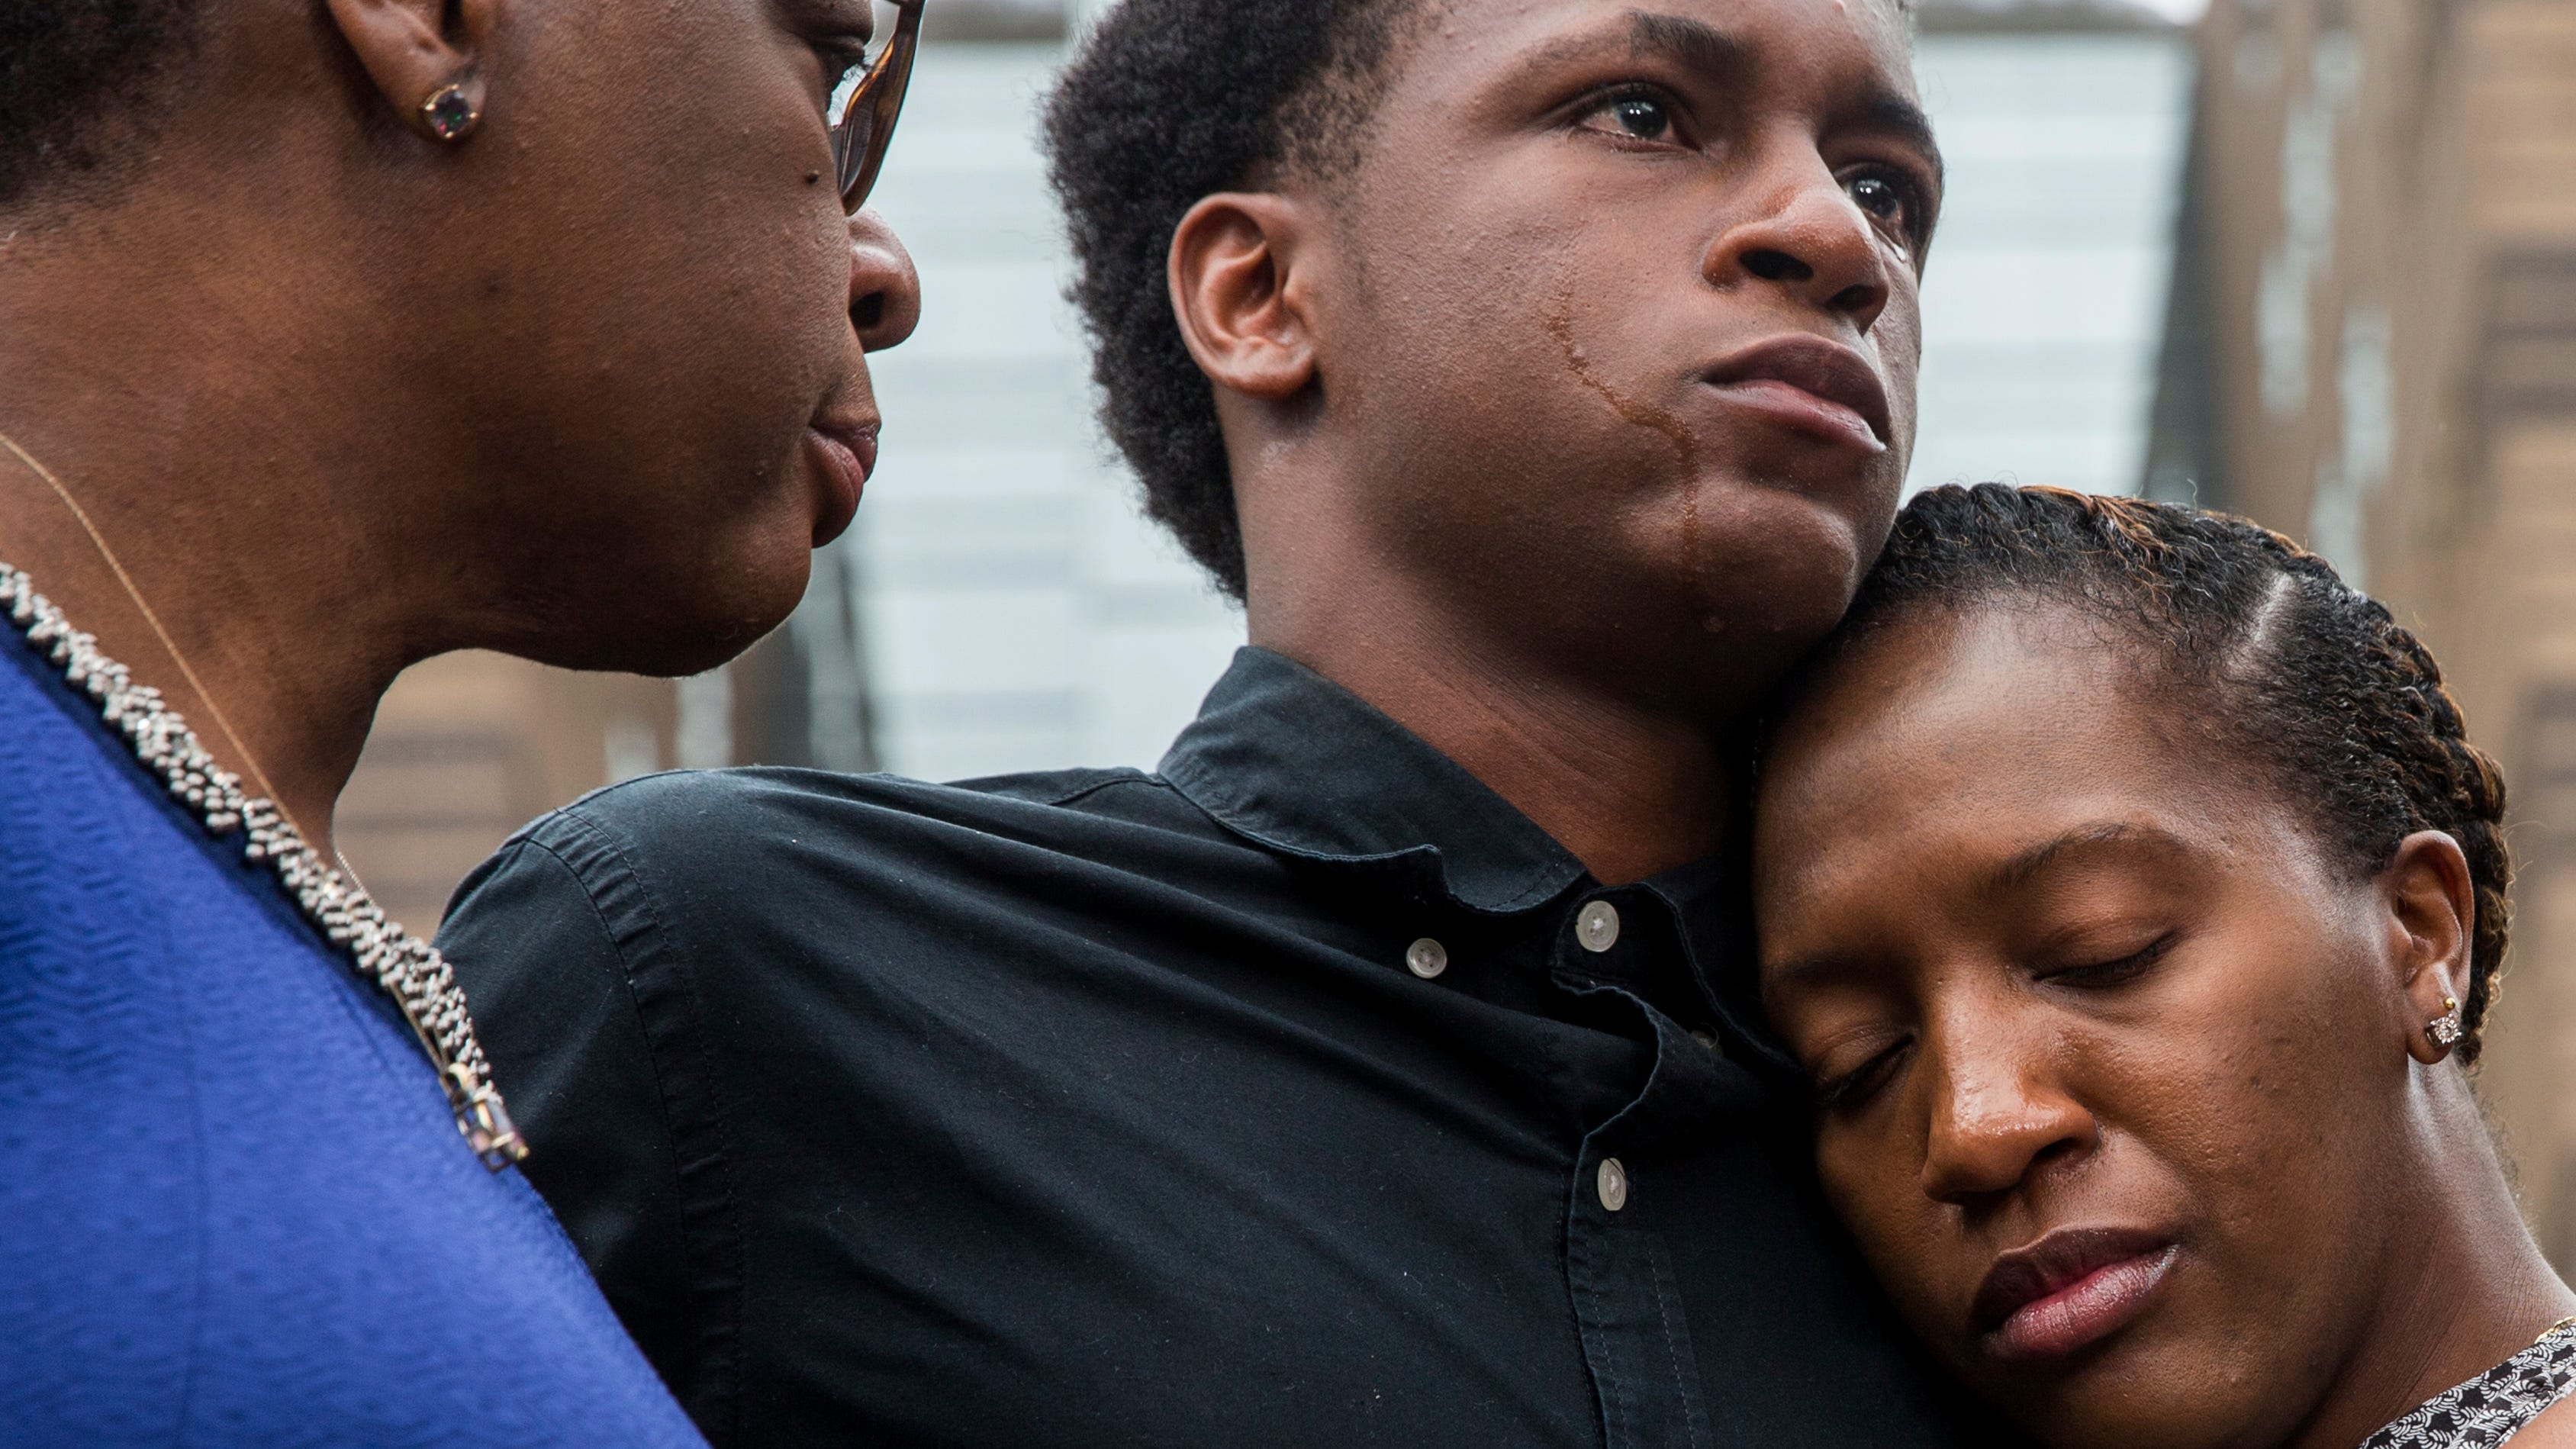 Brandt Jean, brother of Botham Jean, is comforted by his sister, Allisa Charles-Findley, as their mother, Allison, looks on during a news conference on Sept. 10, 2018.